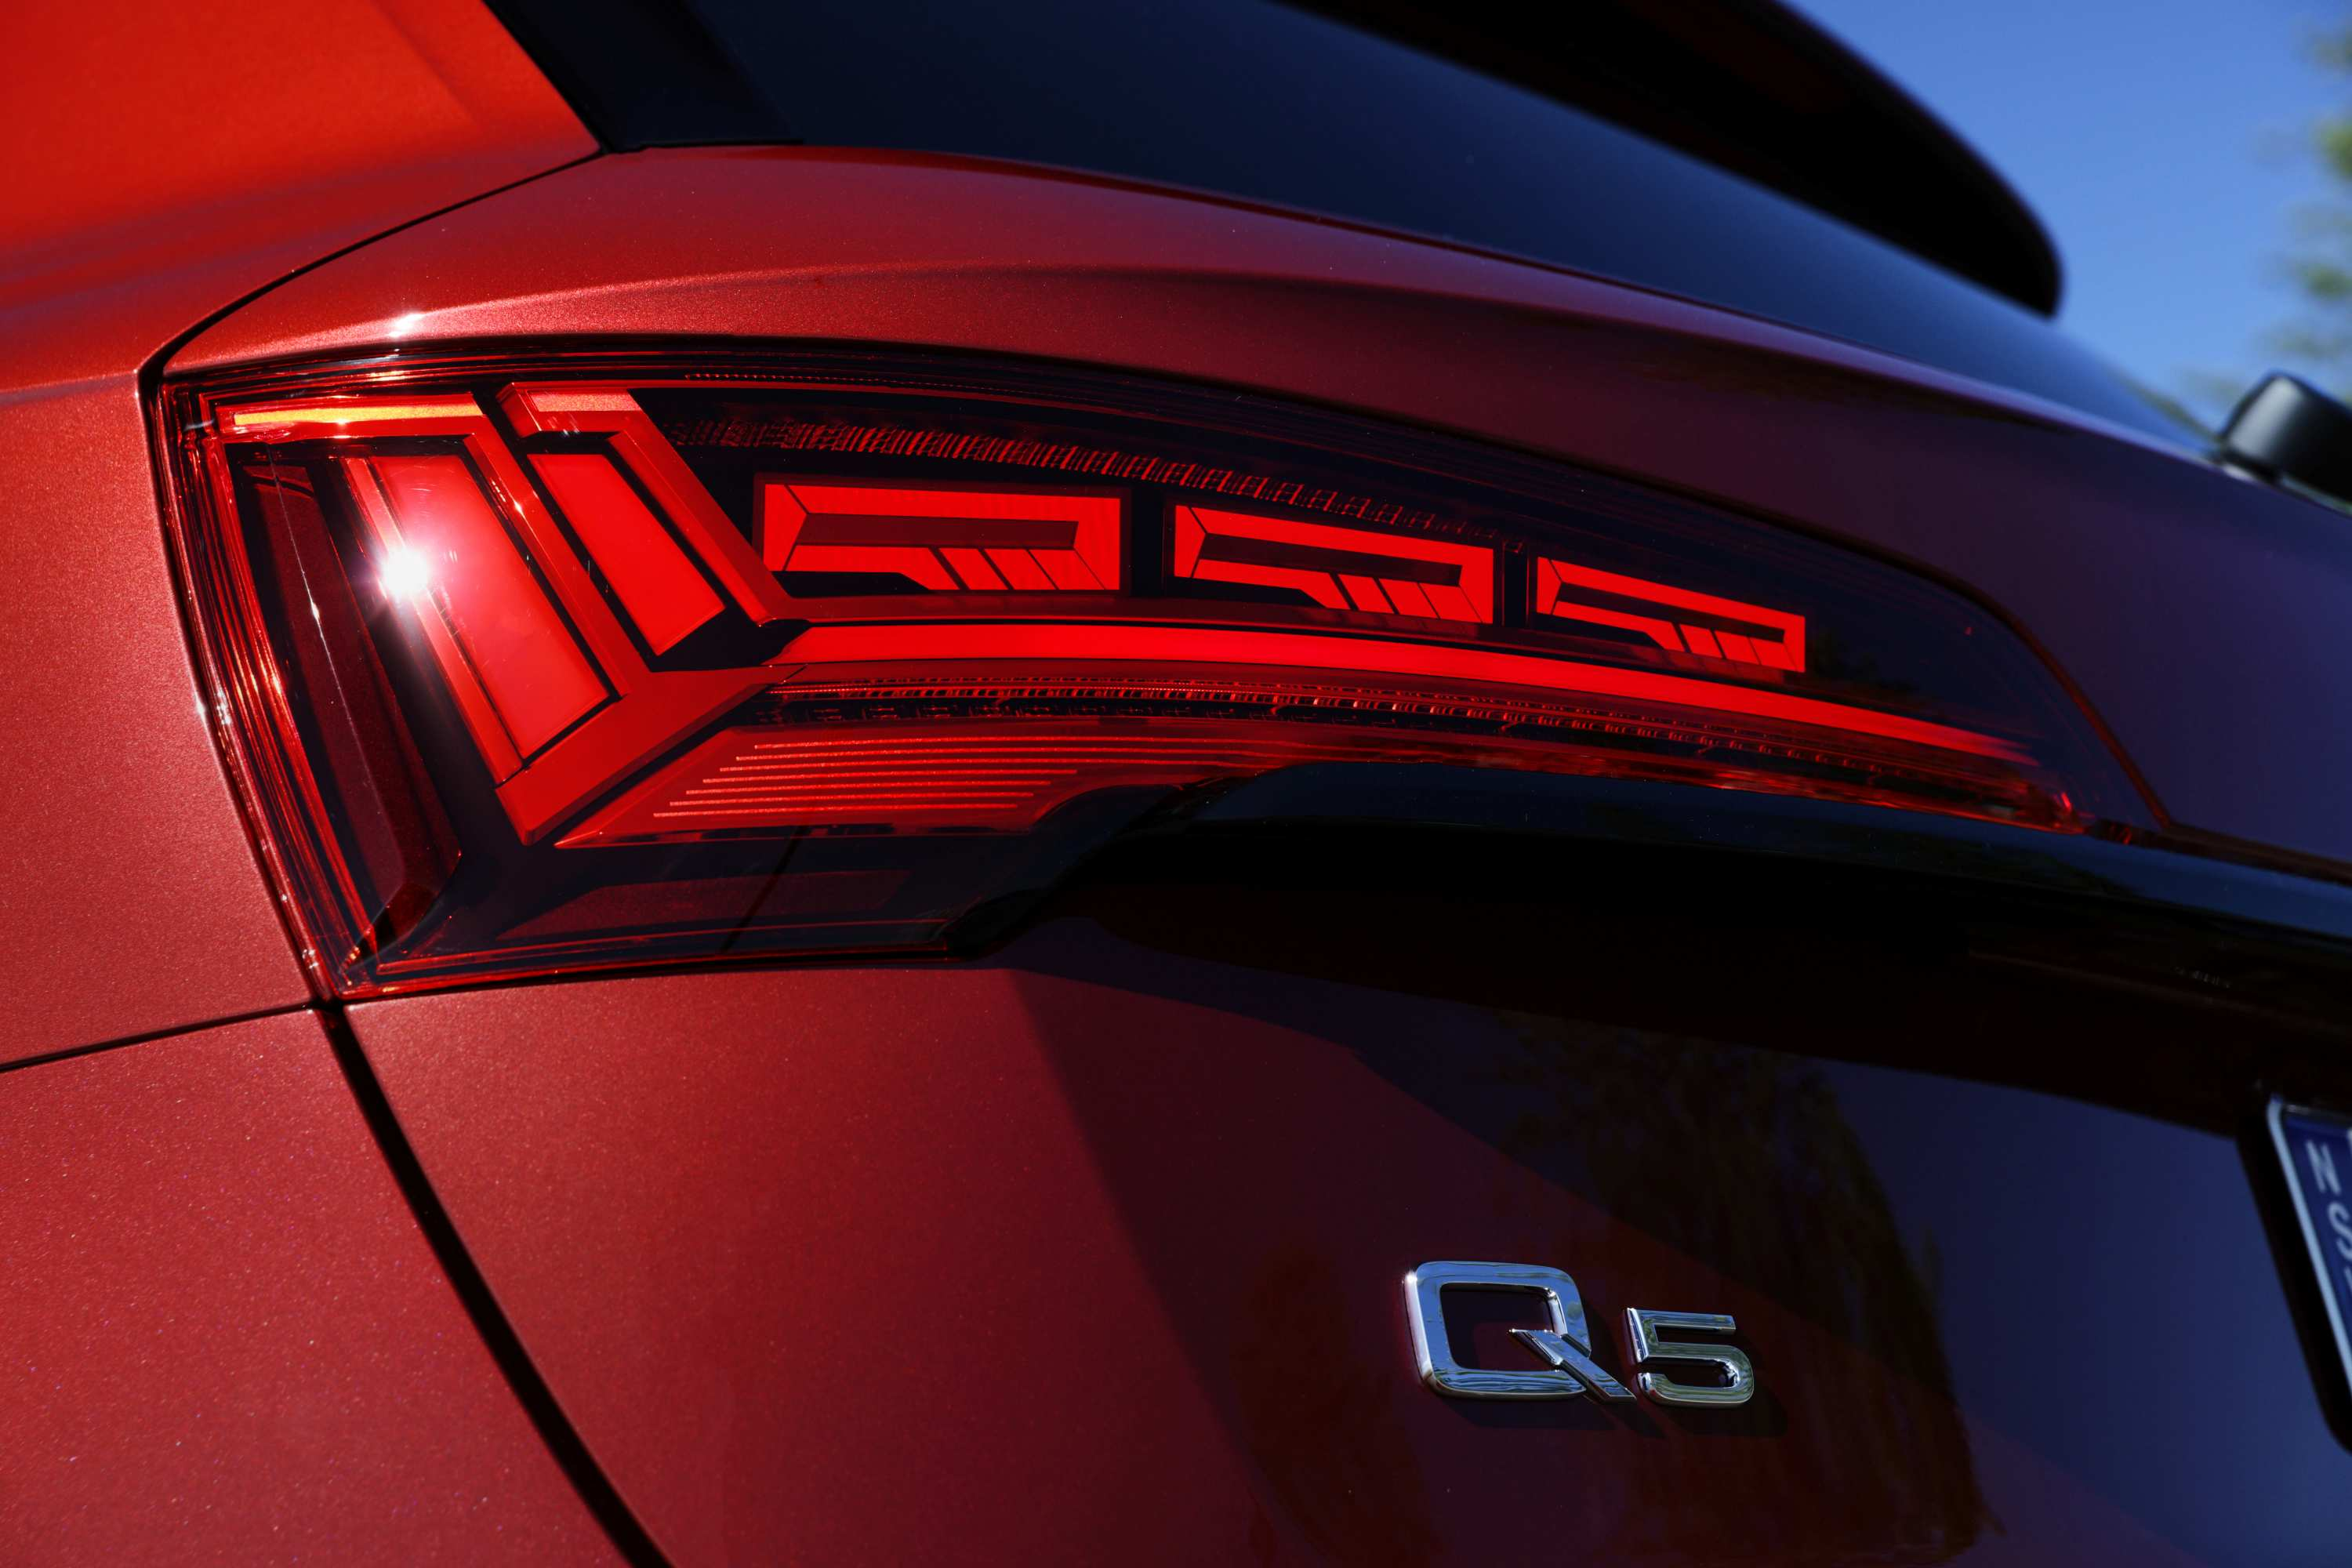 Audi Q5 2021 OLED Tail Lights